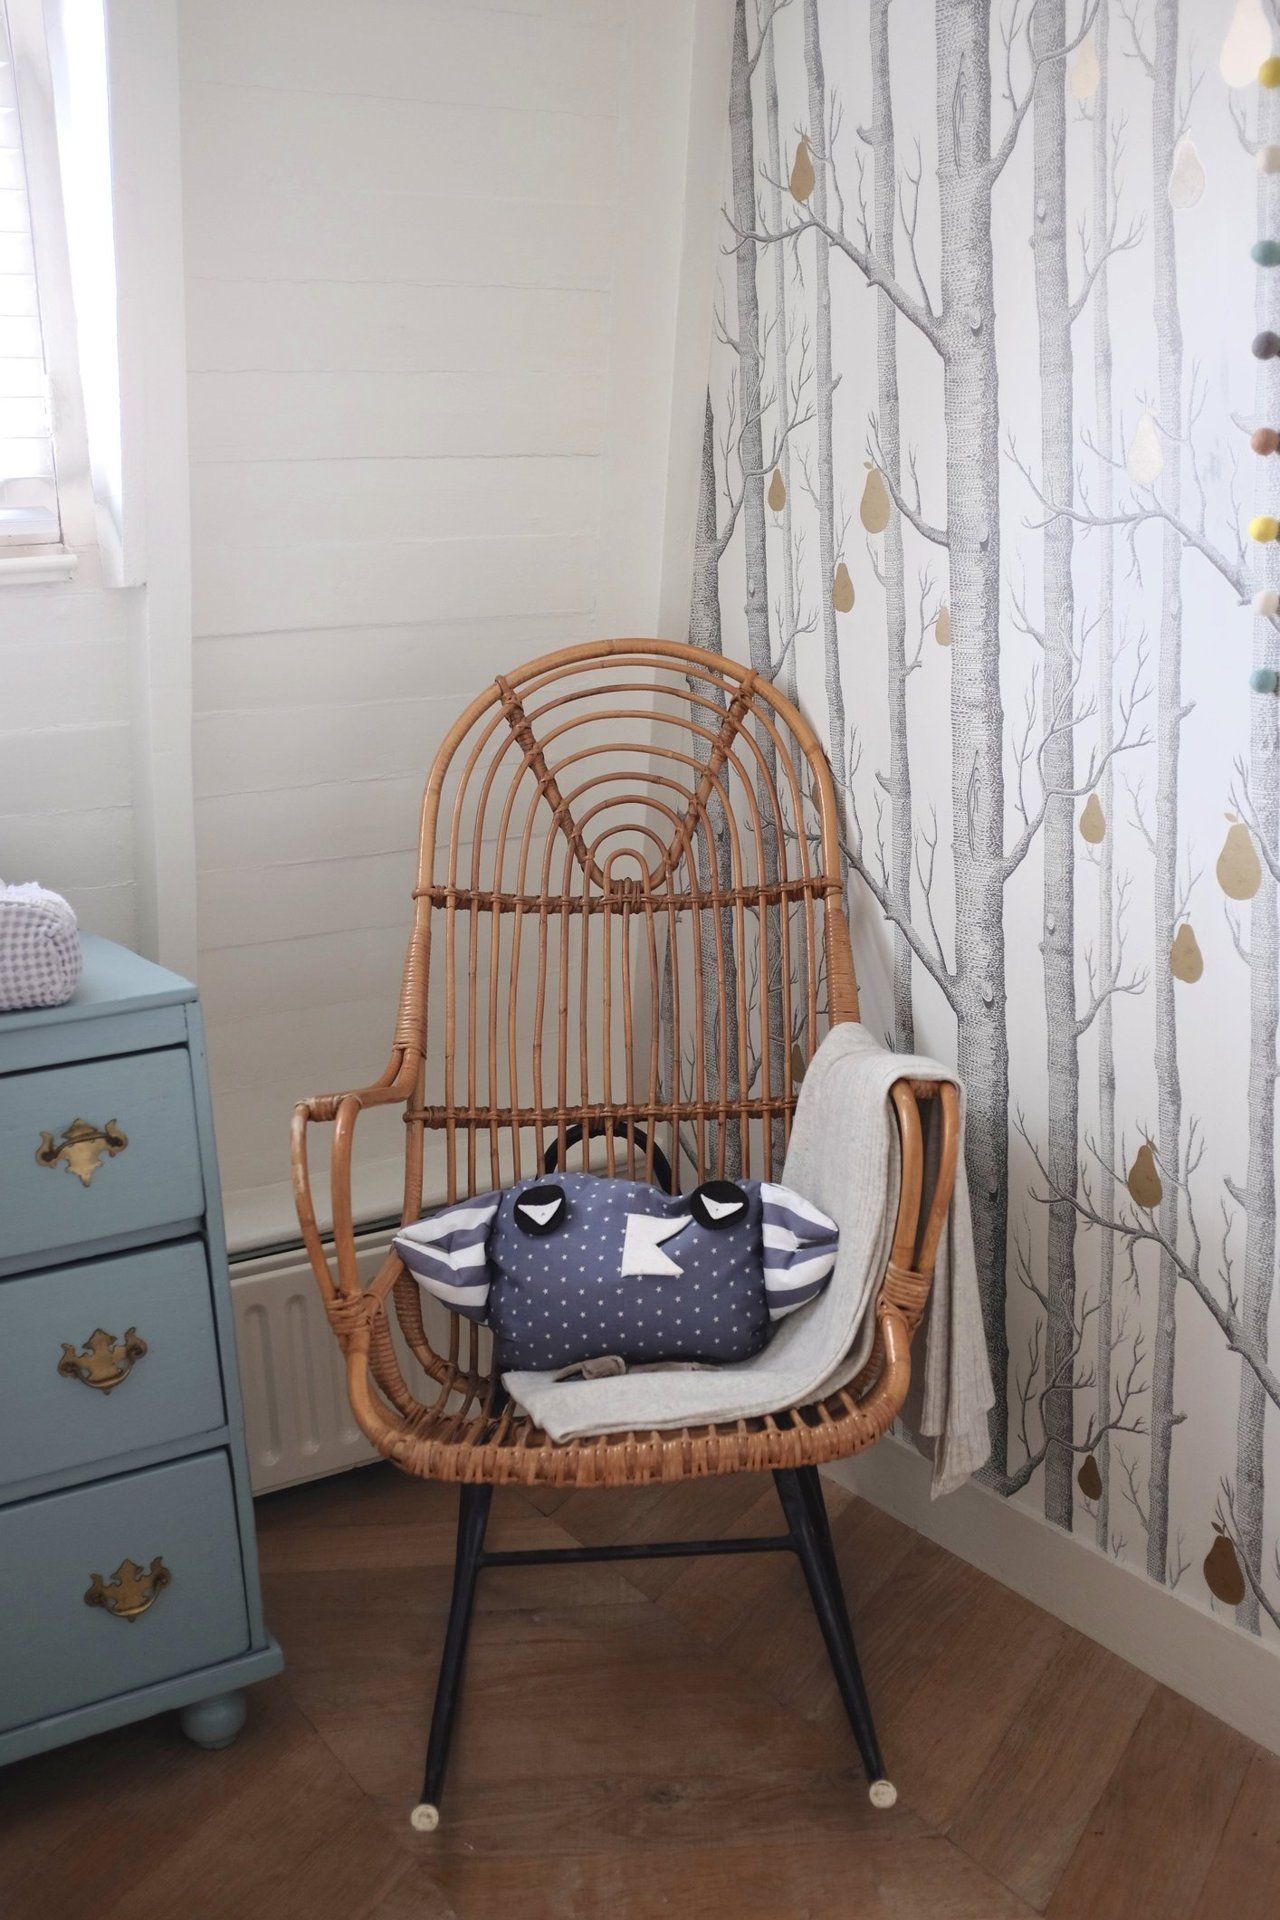 Sri's Classic & Contemporary Amsterdam Home | #nursery #kidsroom The classic birth tree wallpaper from Cole & Son is DIYed with gold pears to add a hint of whimsical and personal touch.